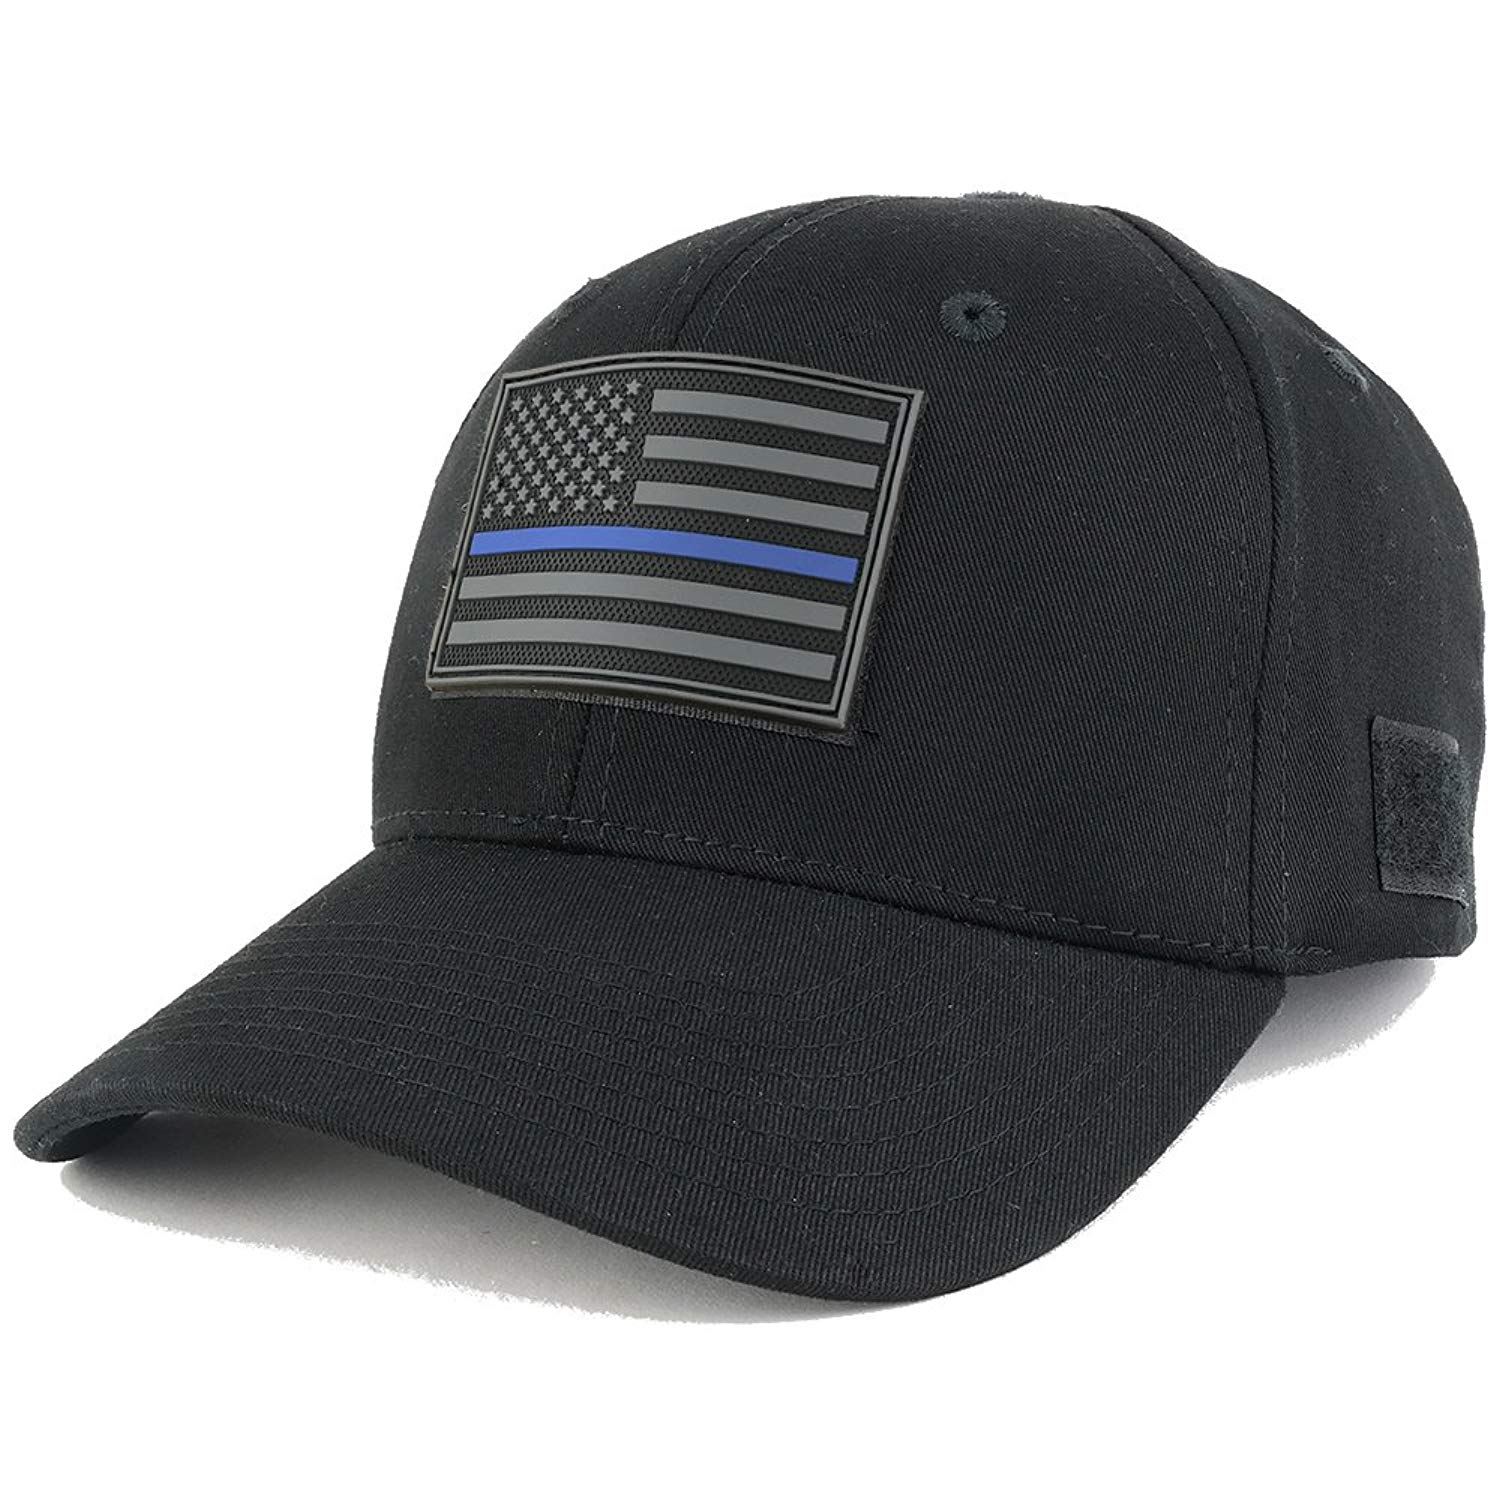 d74cb9977 Cheap Tactical Cap With Flag, find Tactical Cap With Flag deals on ...